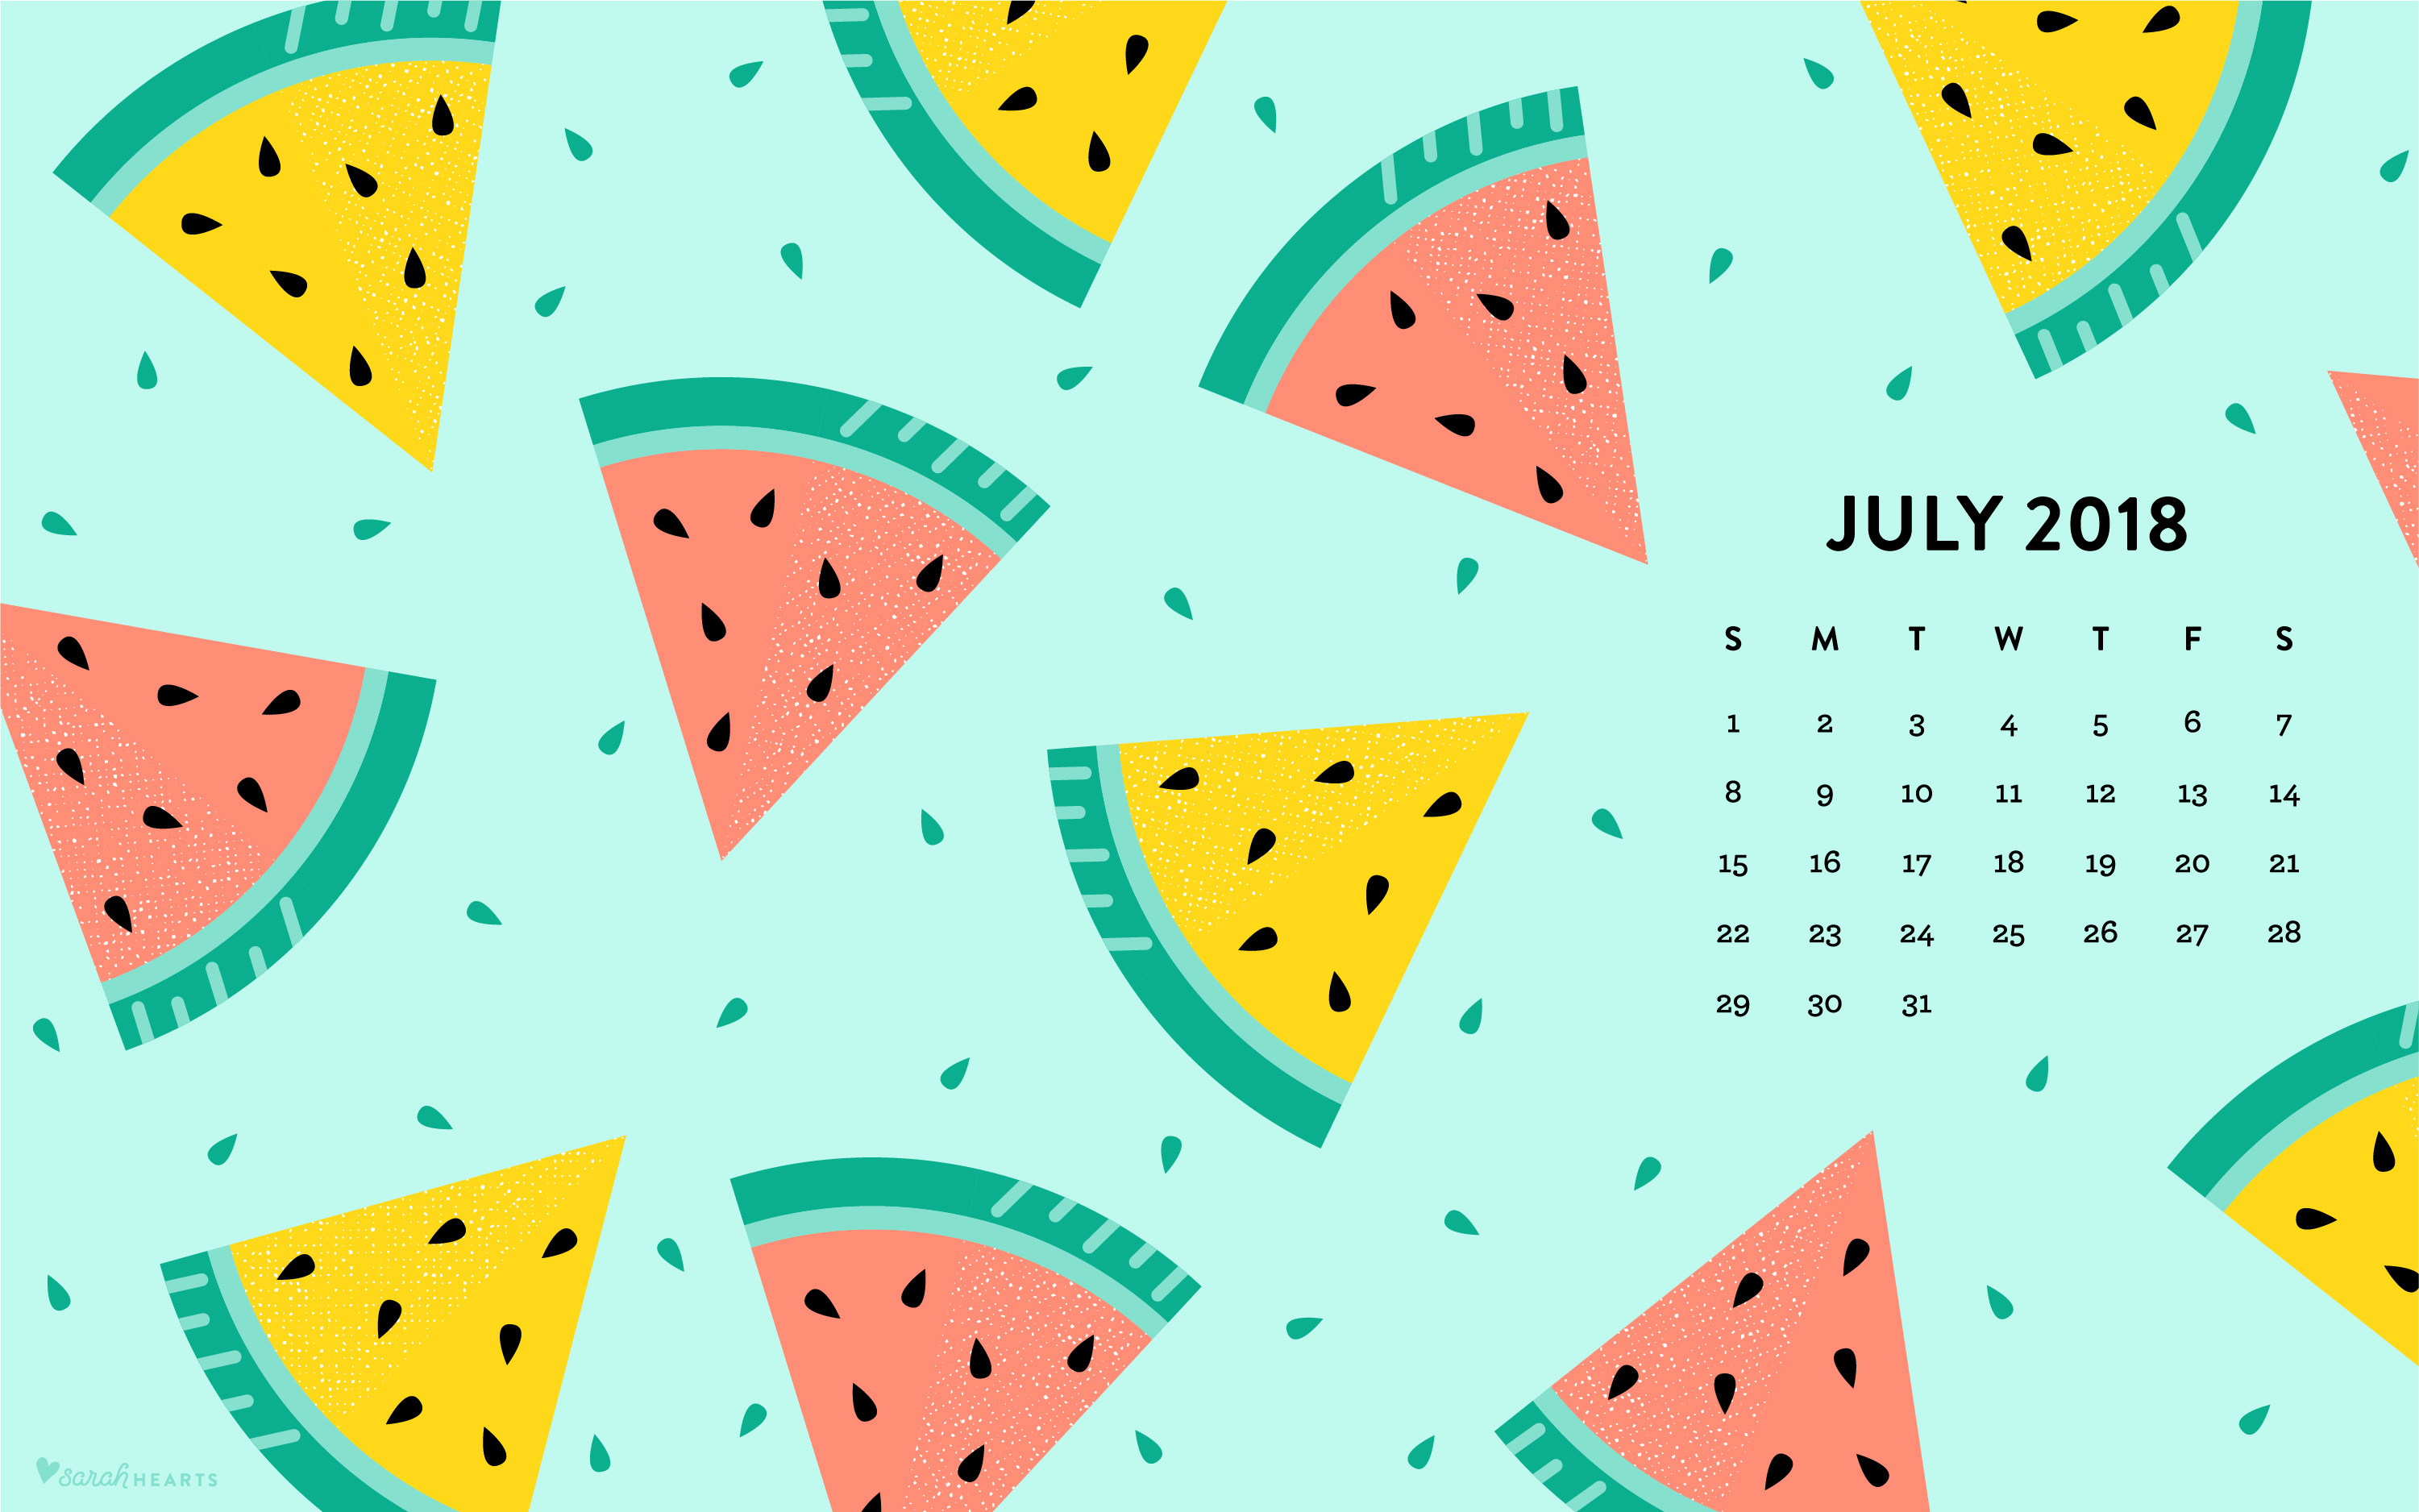 july 2018 watermelon calendar wallpaper